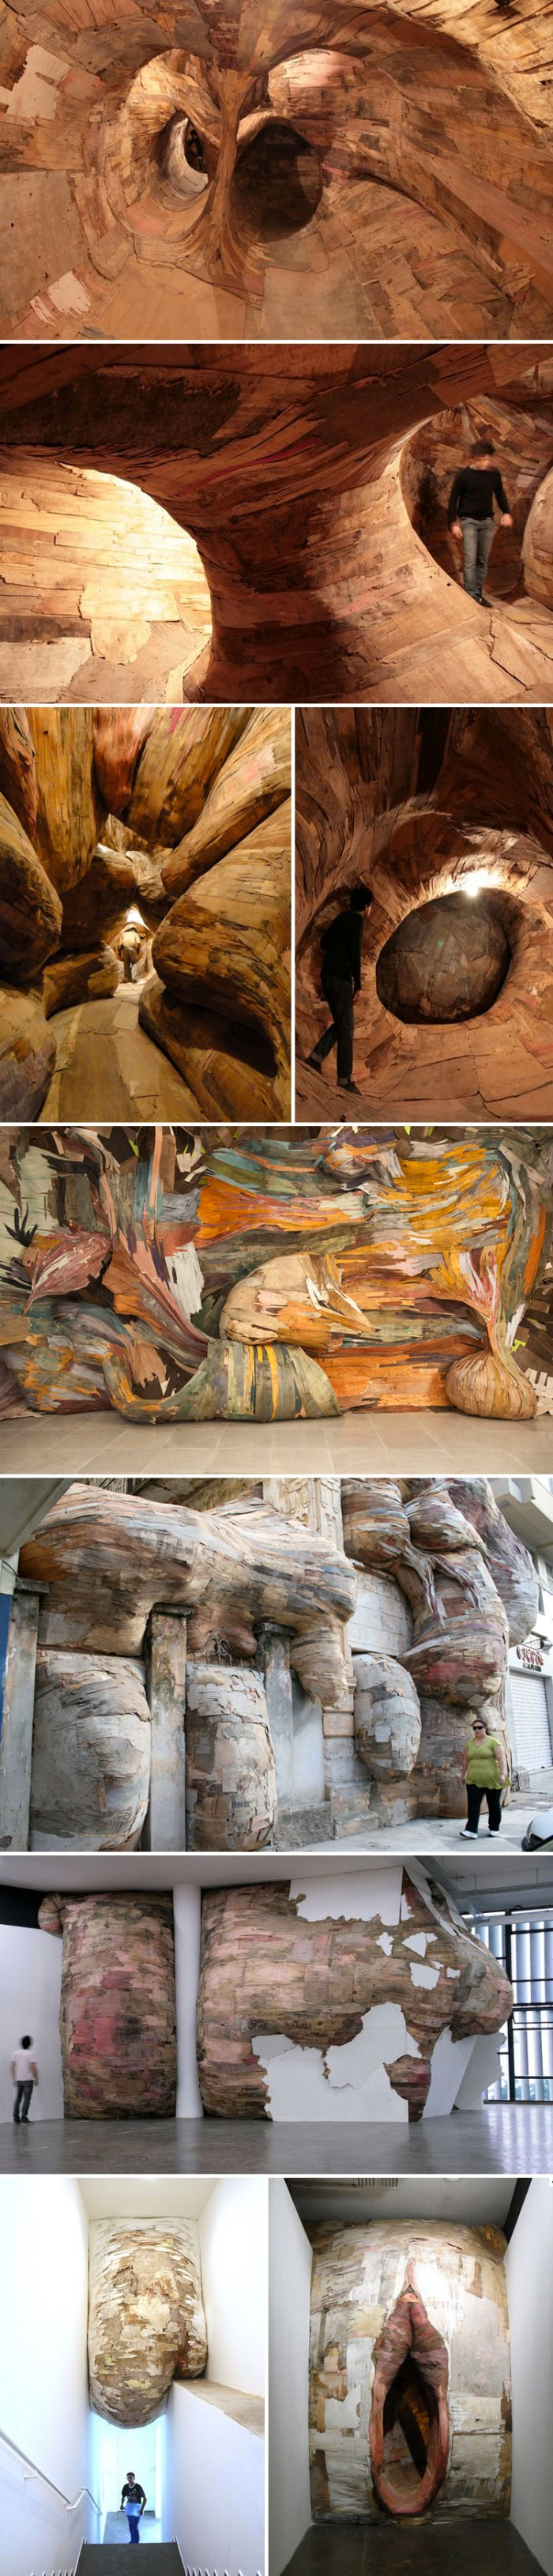 Amazing bursting labyrinthine wood installations, Brazilian contemporary art installations by Henrique Oliveira